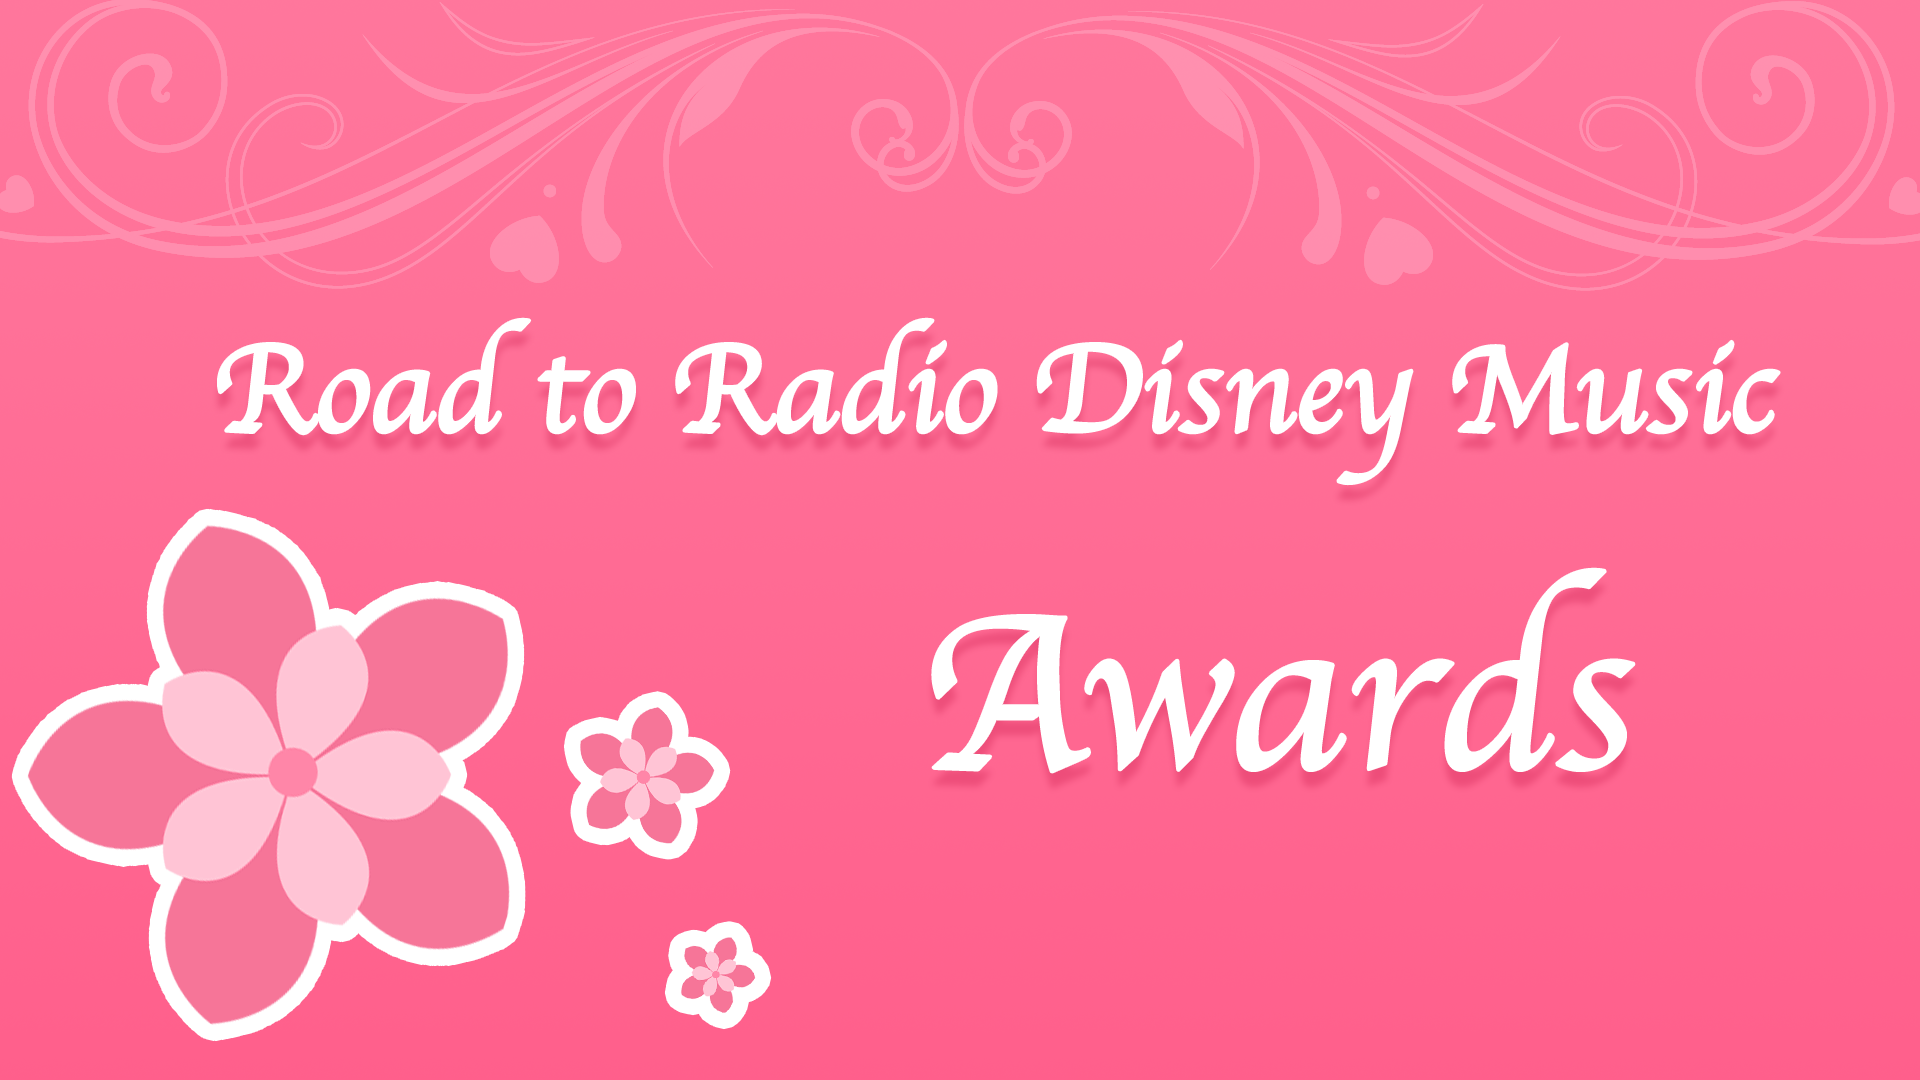 Road to the Radio Disney Awards